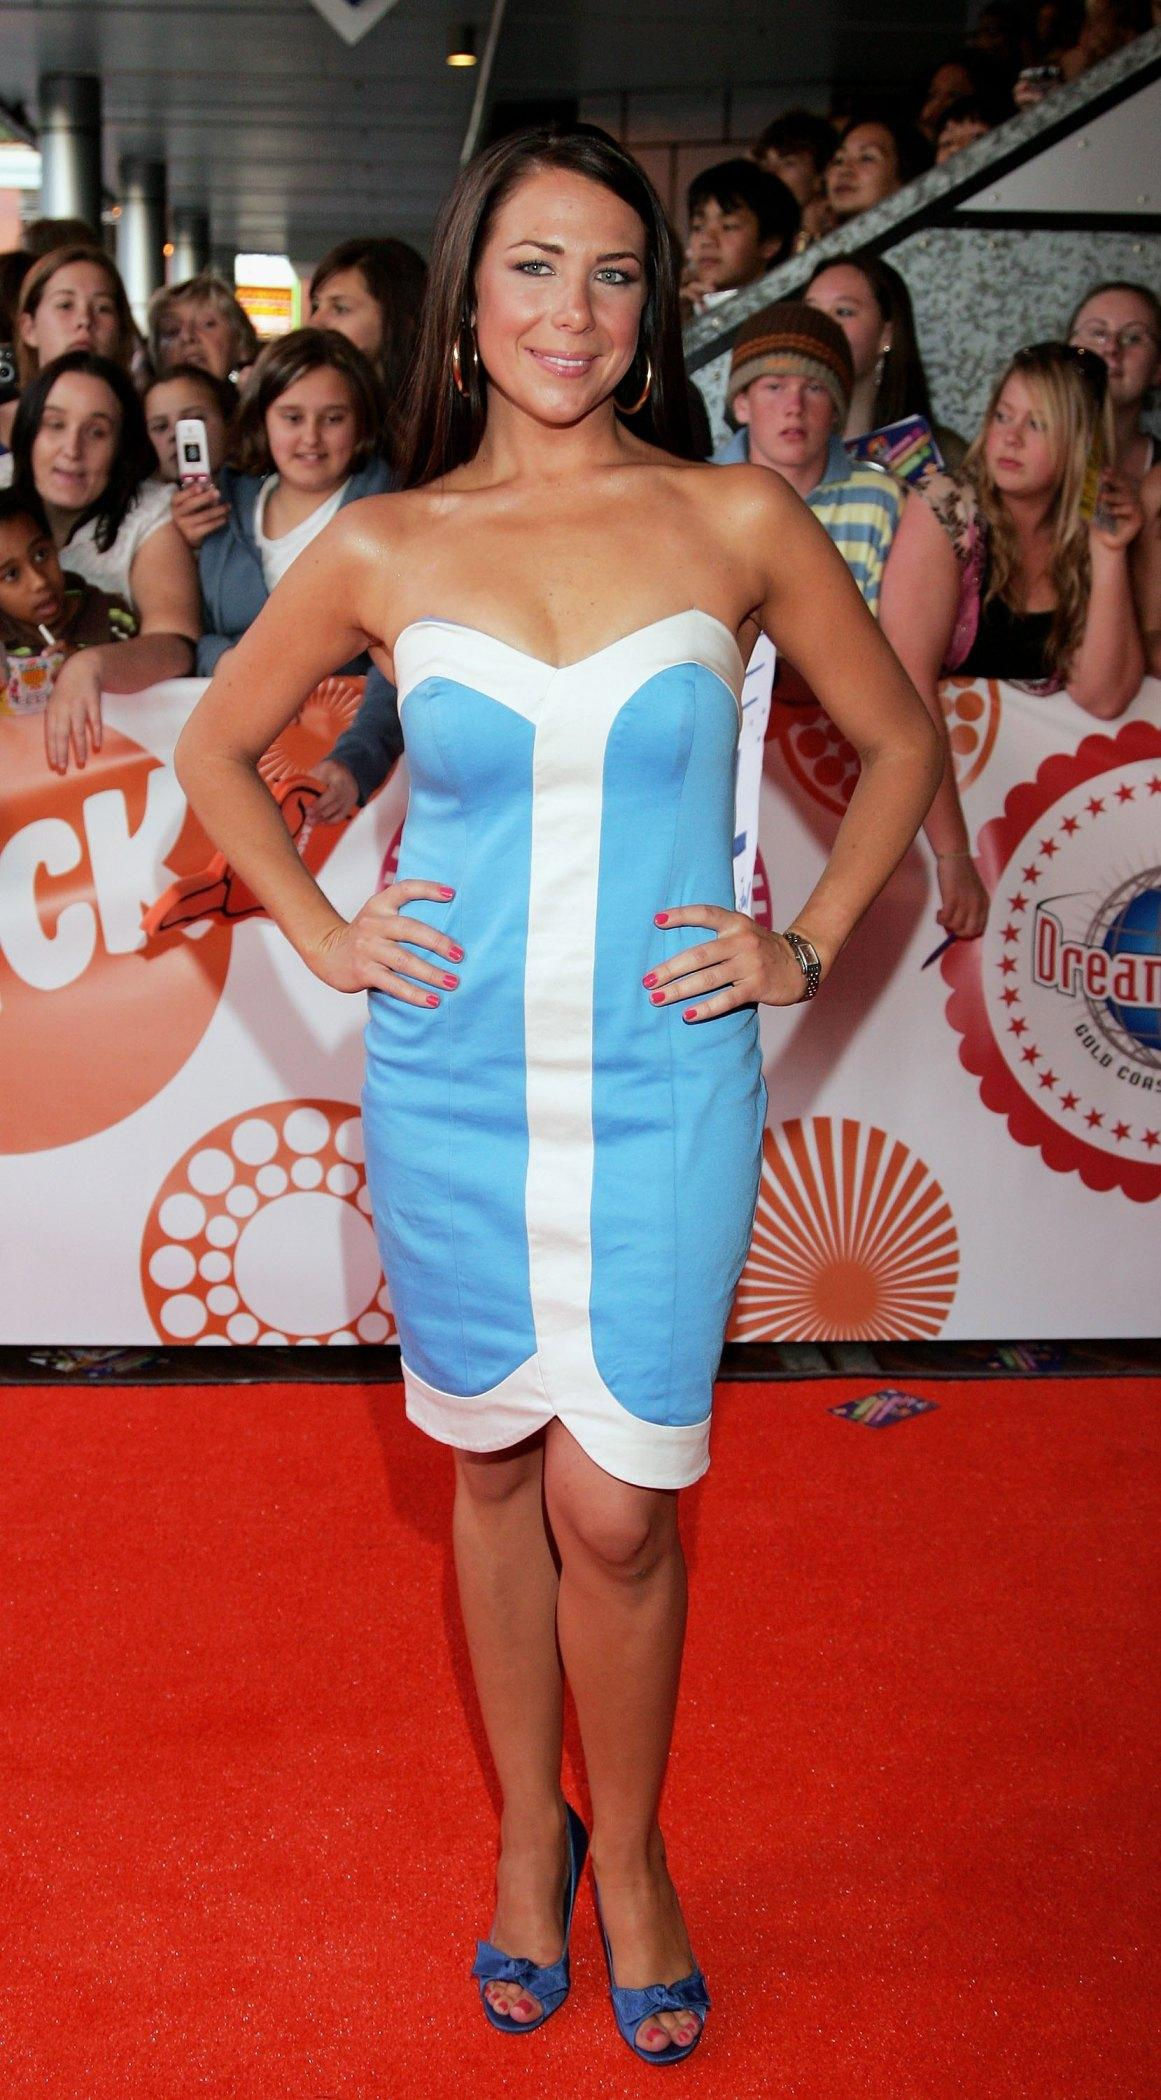 59363_Kate_Ritchie24_122_470lo.jpg